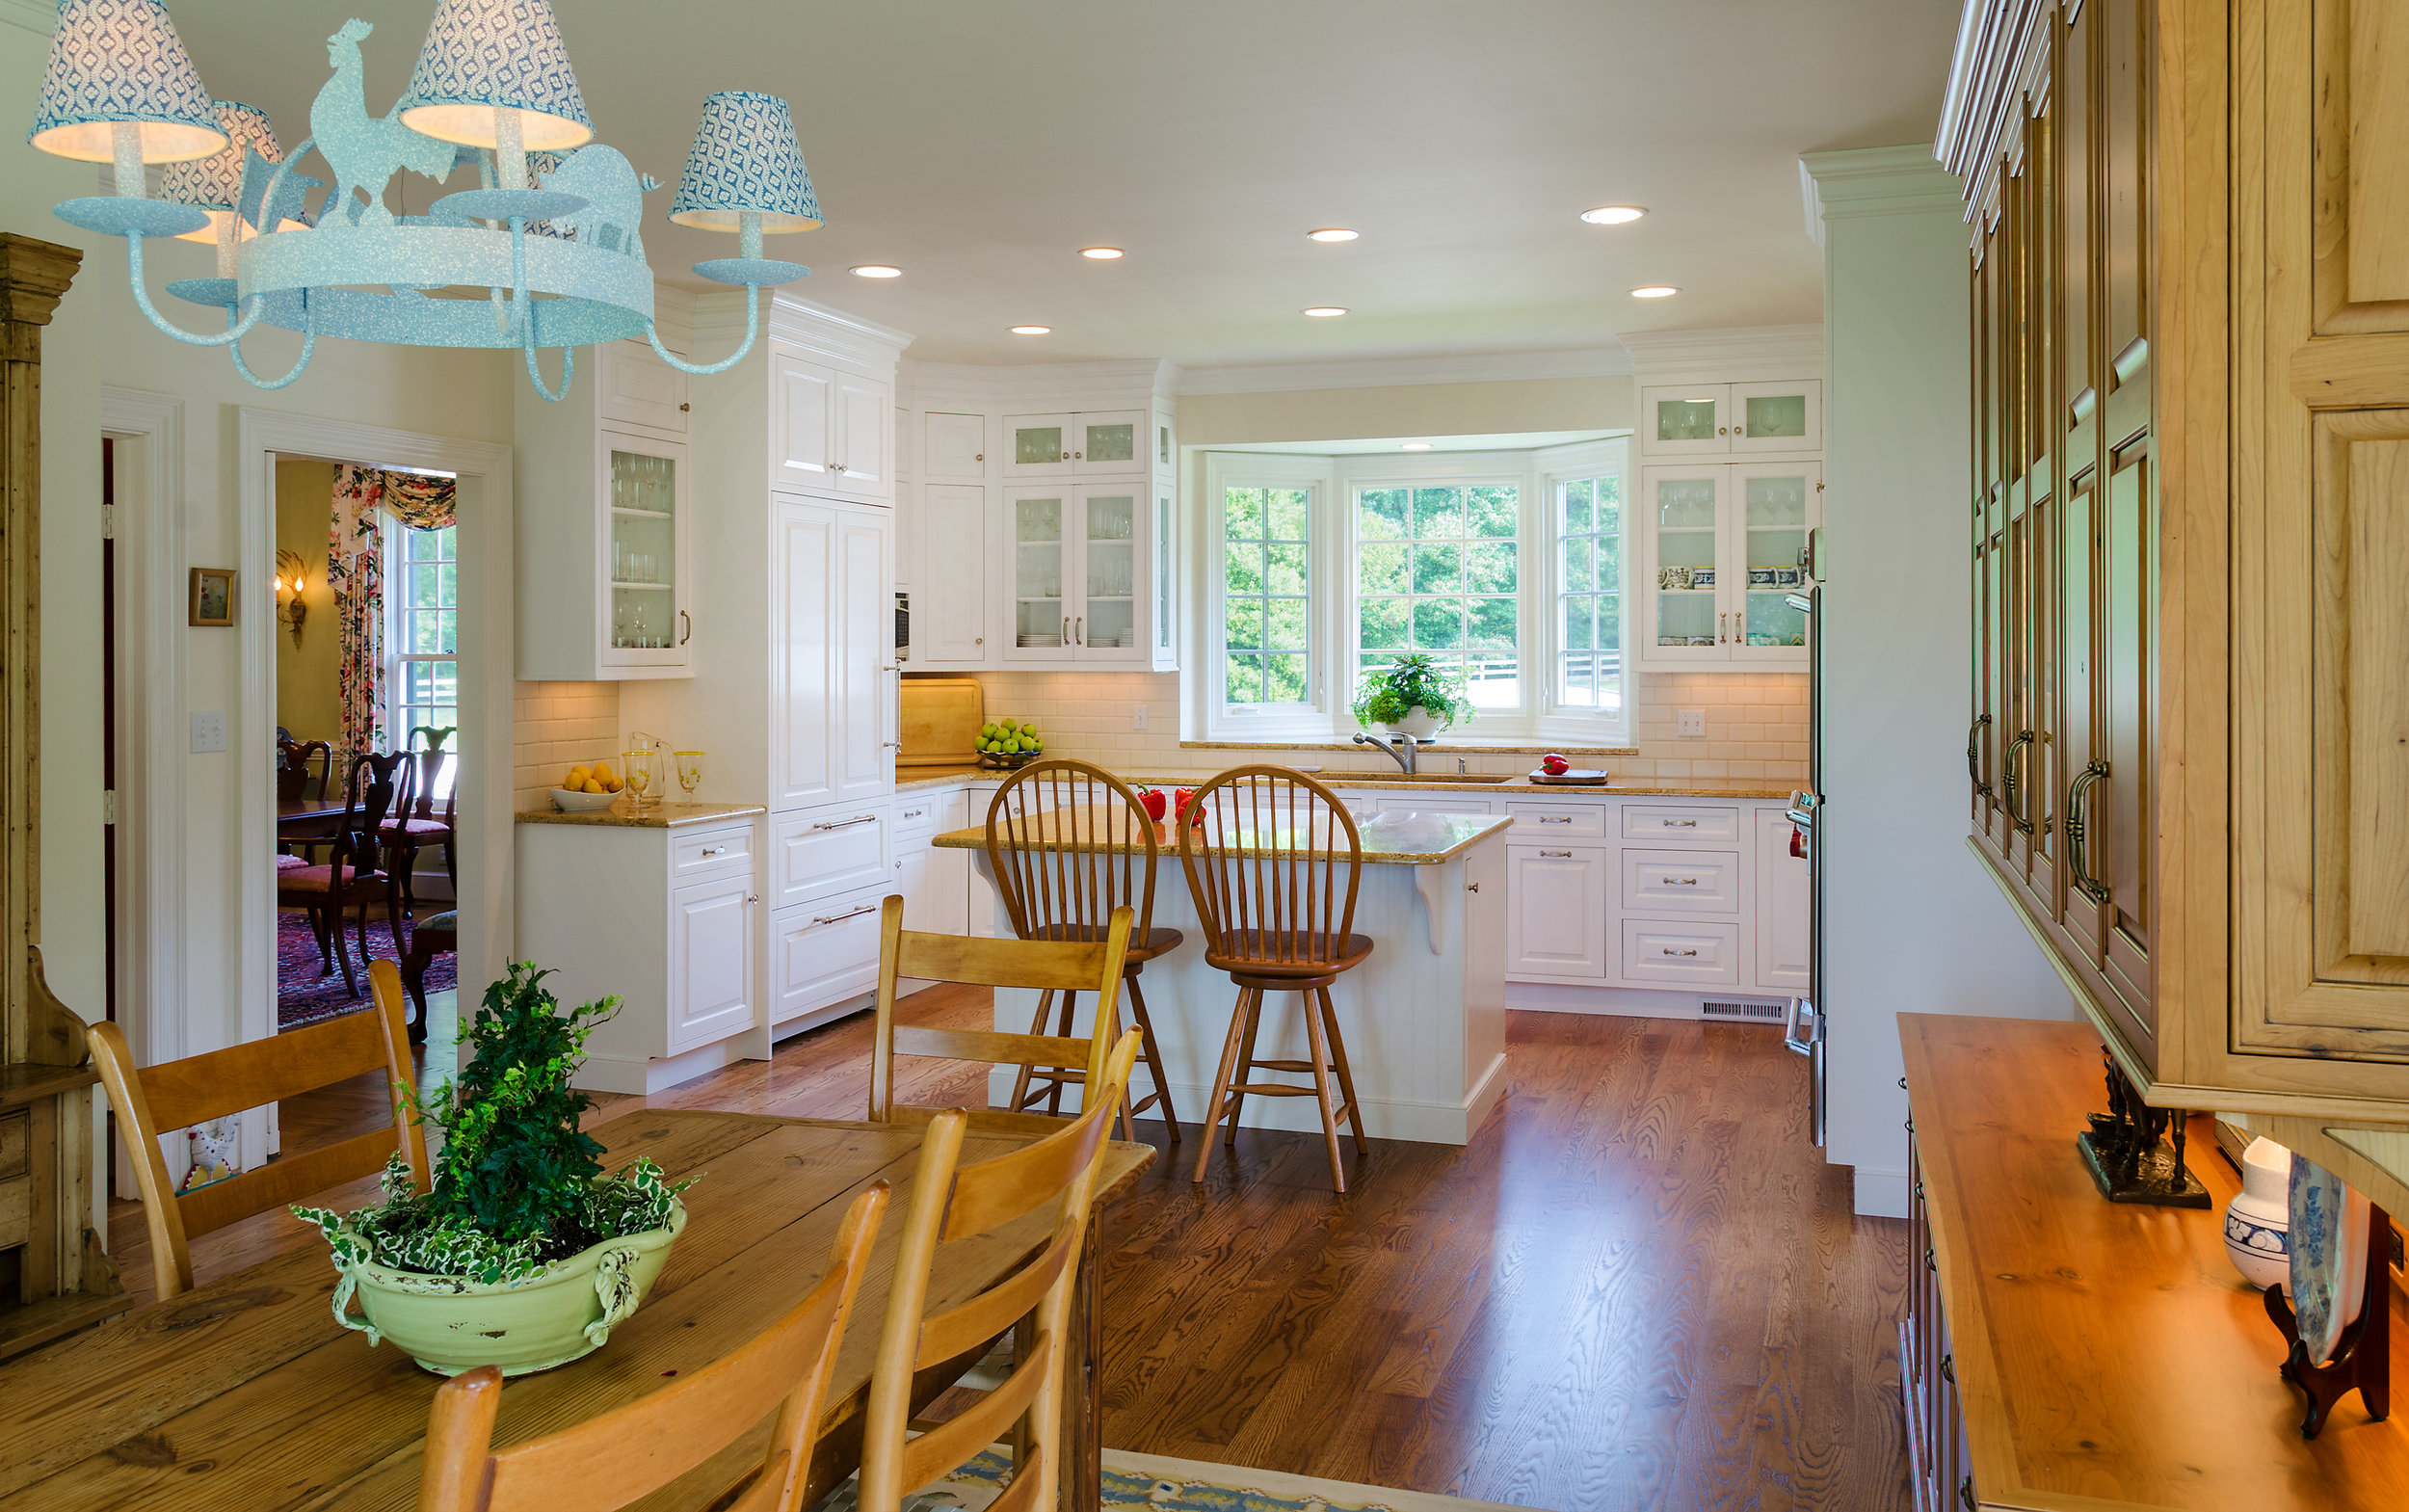 Custom-Kitchens-Armstrong-Kitchen-52813-Overall-plant.jpg